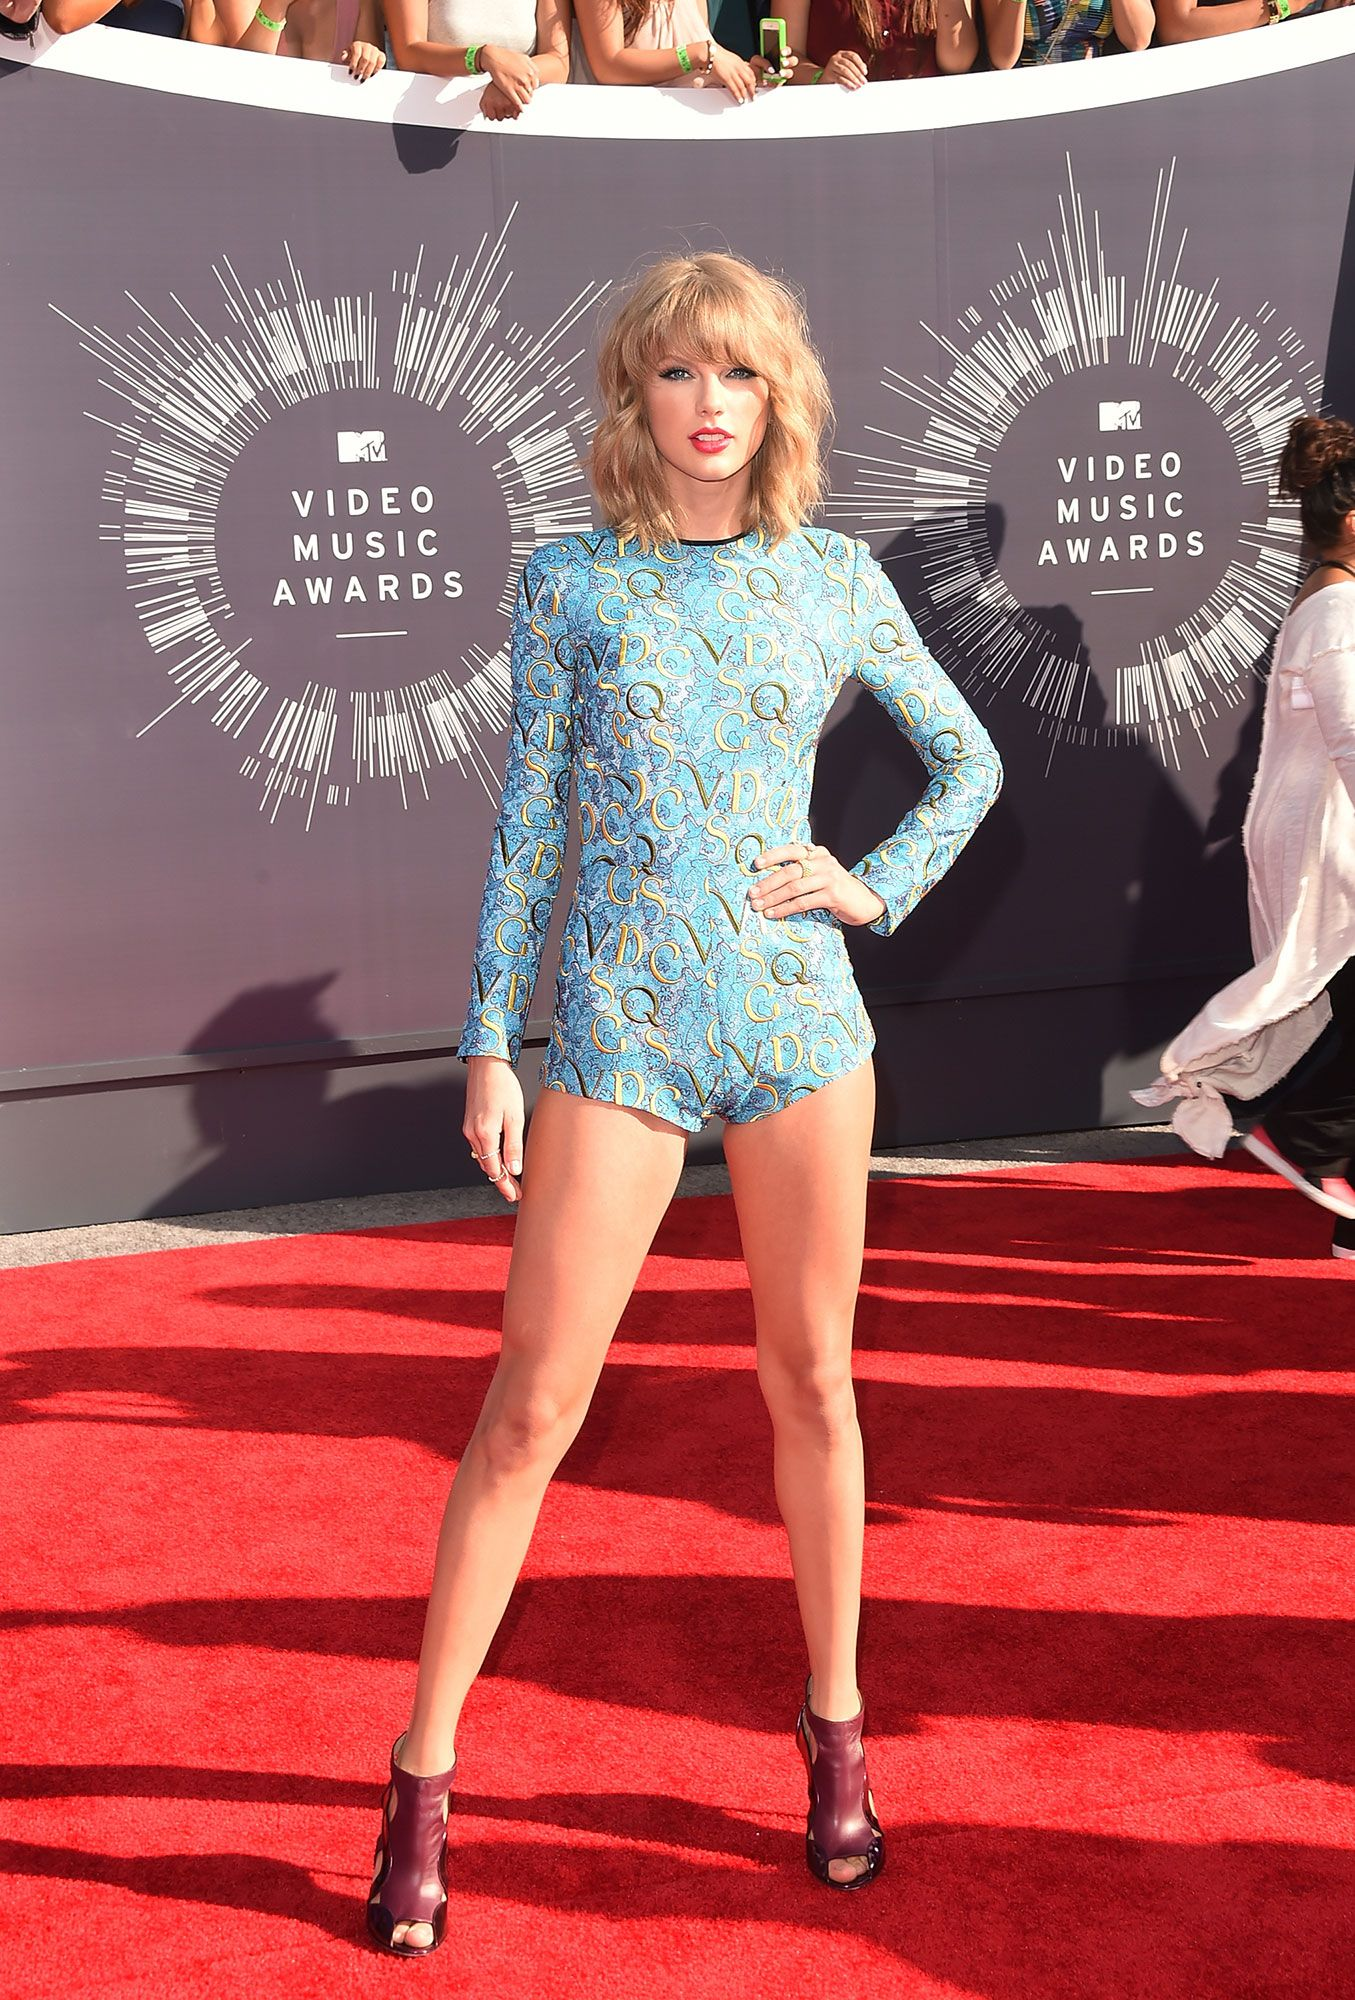 The 10 Most Memorable Red Carpet Looks of 2014 - Taylor Swift in Mary Katrantzou